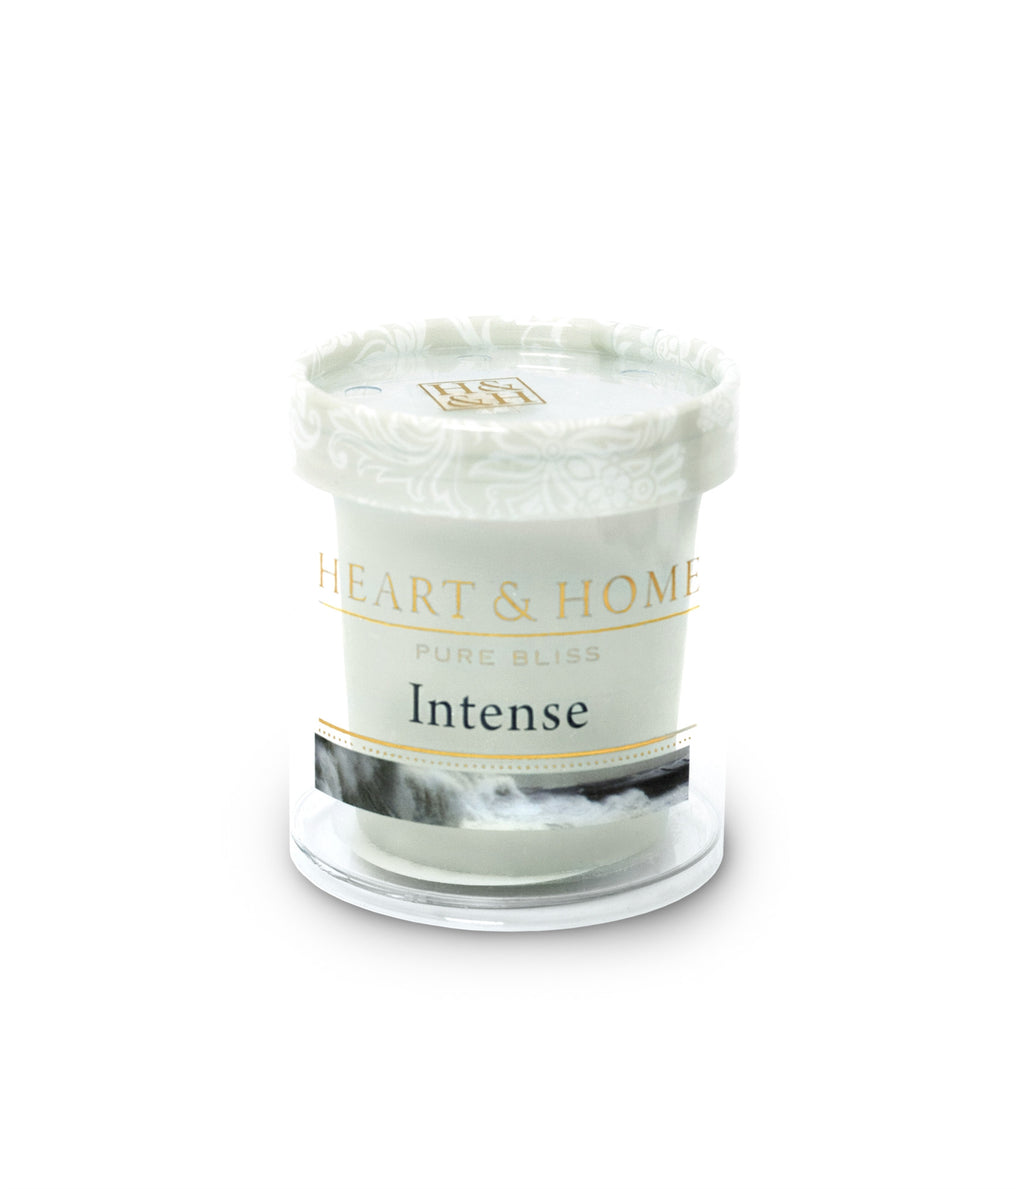 Intense - Votive - From Heart and Home